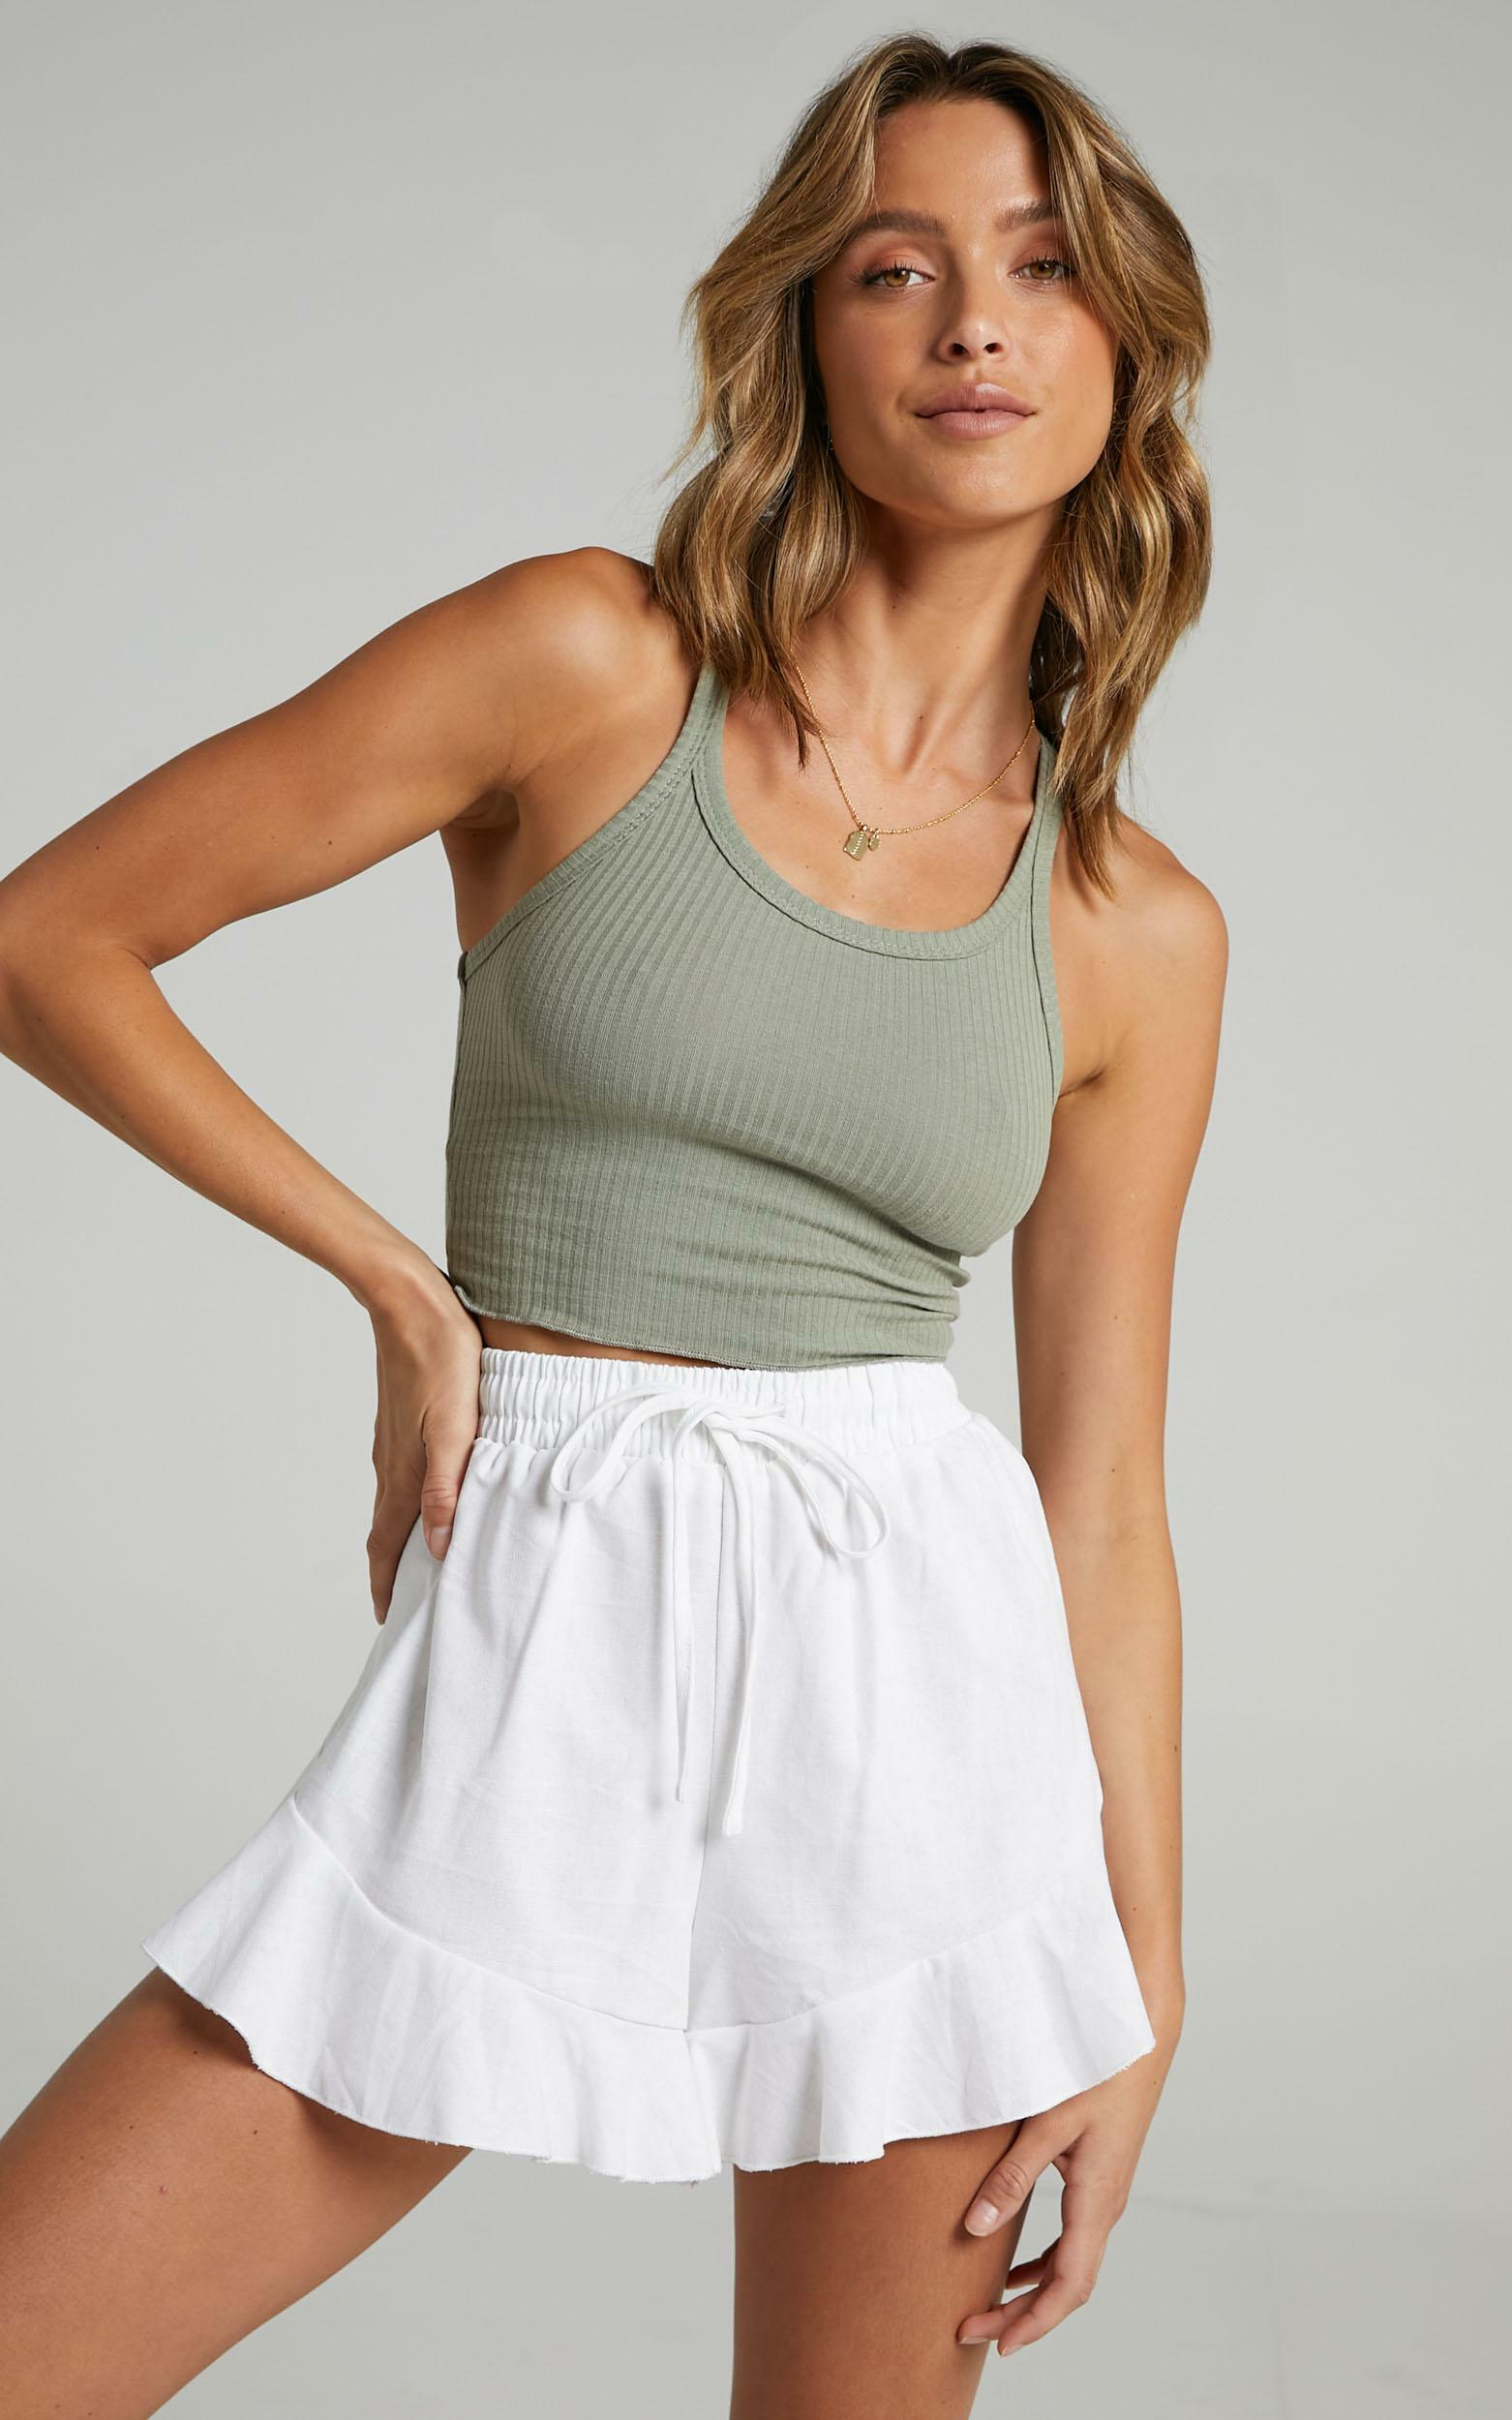 Beach Vibes Shorts In White - 4 (XXS), White, hi-res image number null